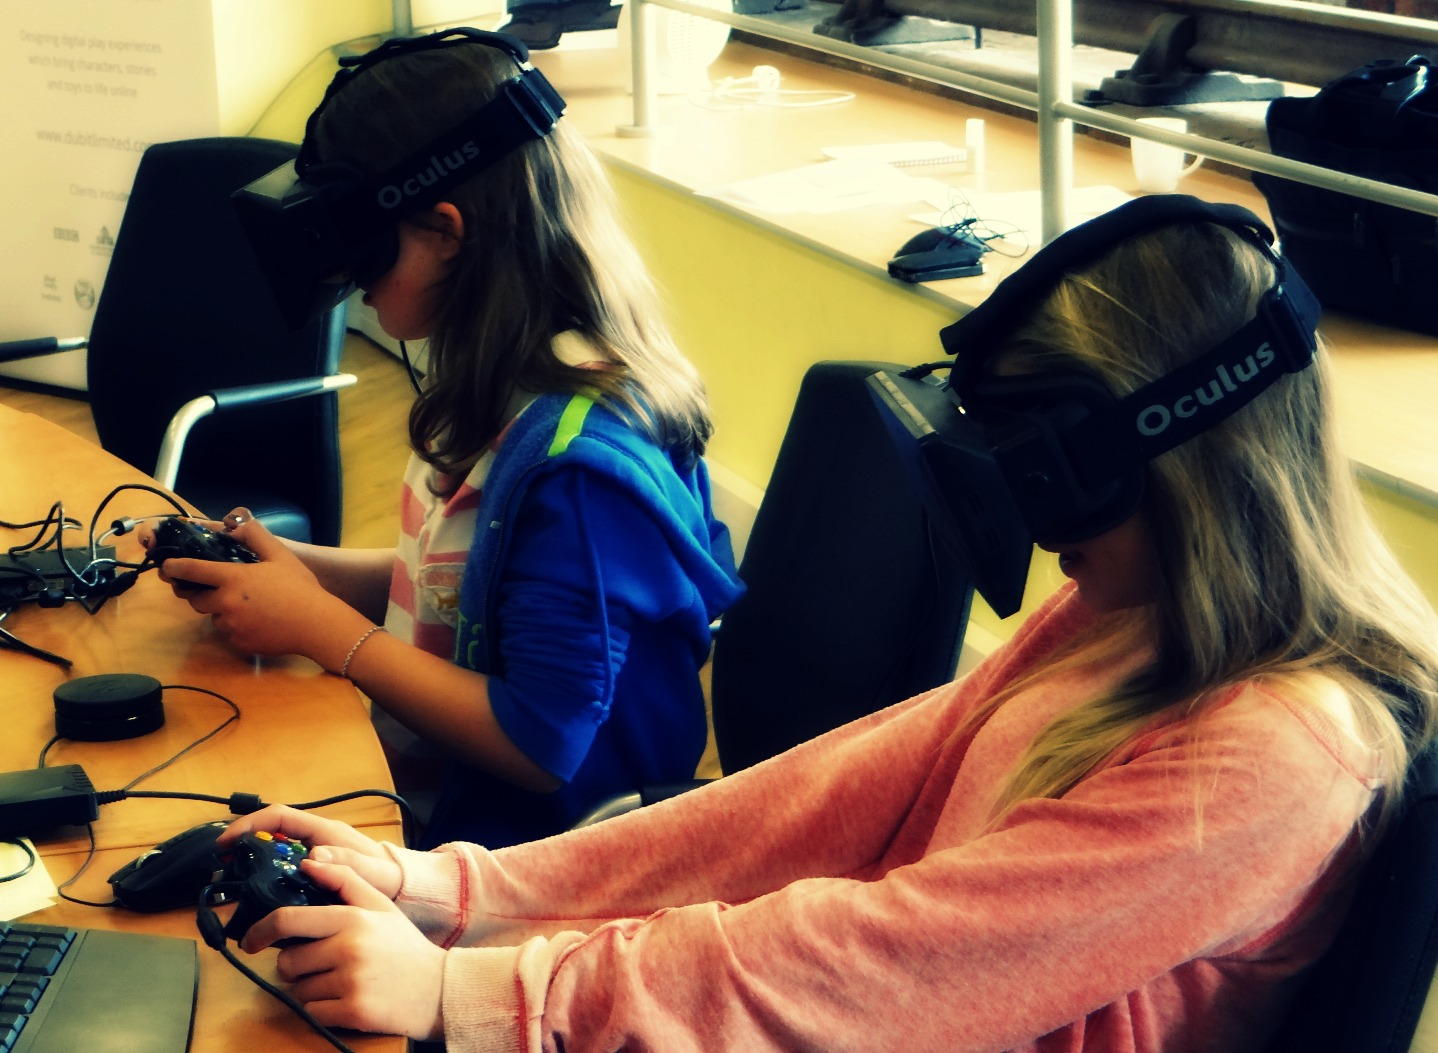 Creating Virtual Reality games with Oculus Rift